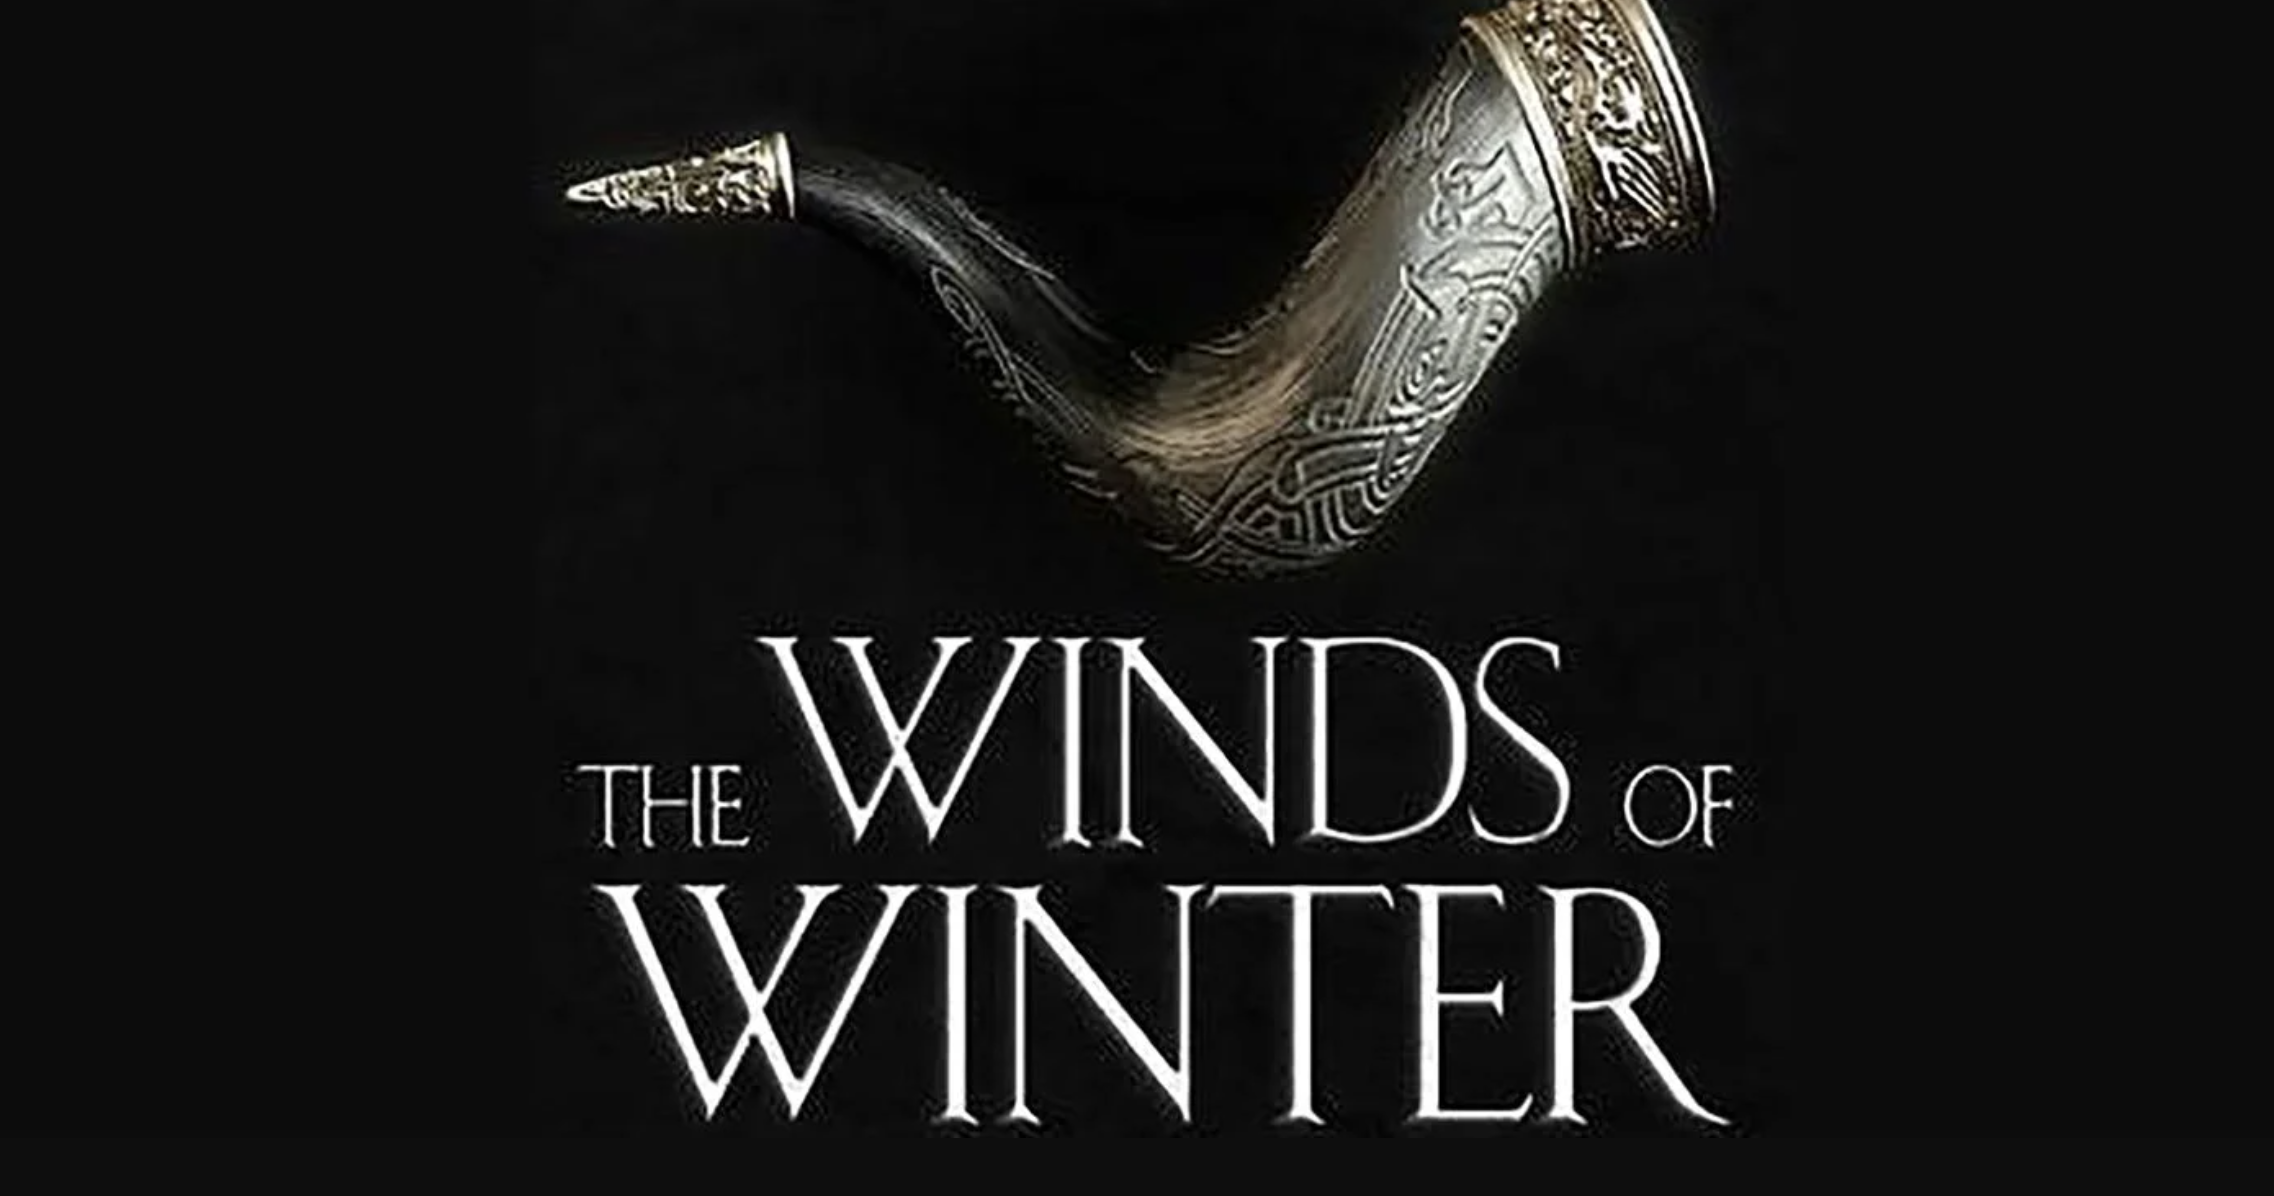 George RR Martin on The Winds of Winter Progress Update